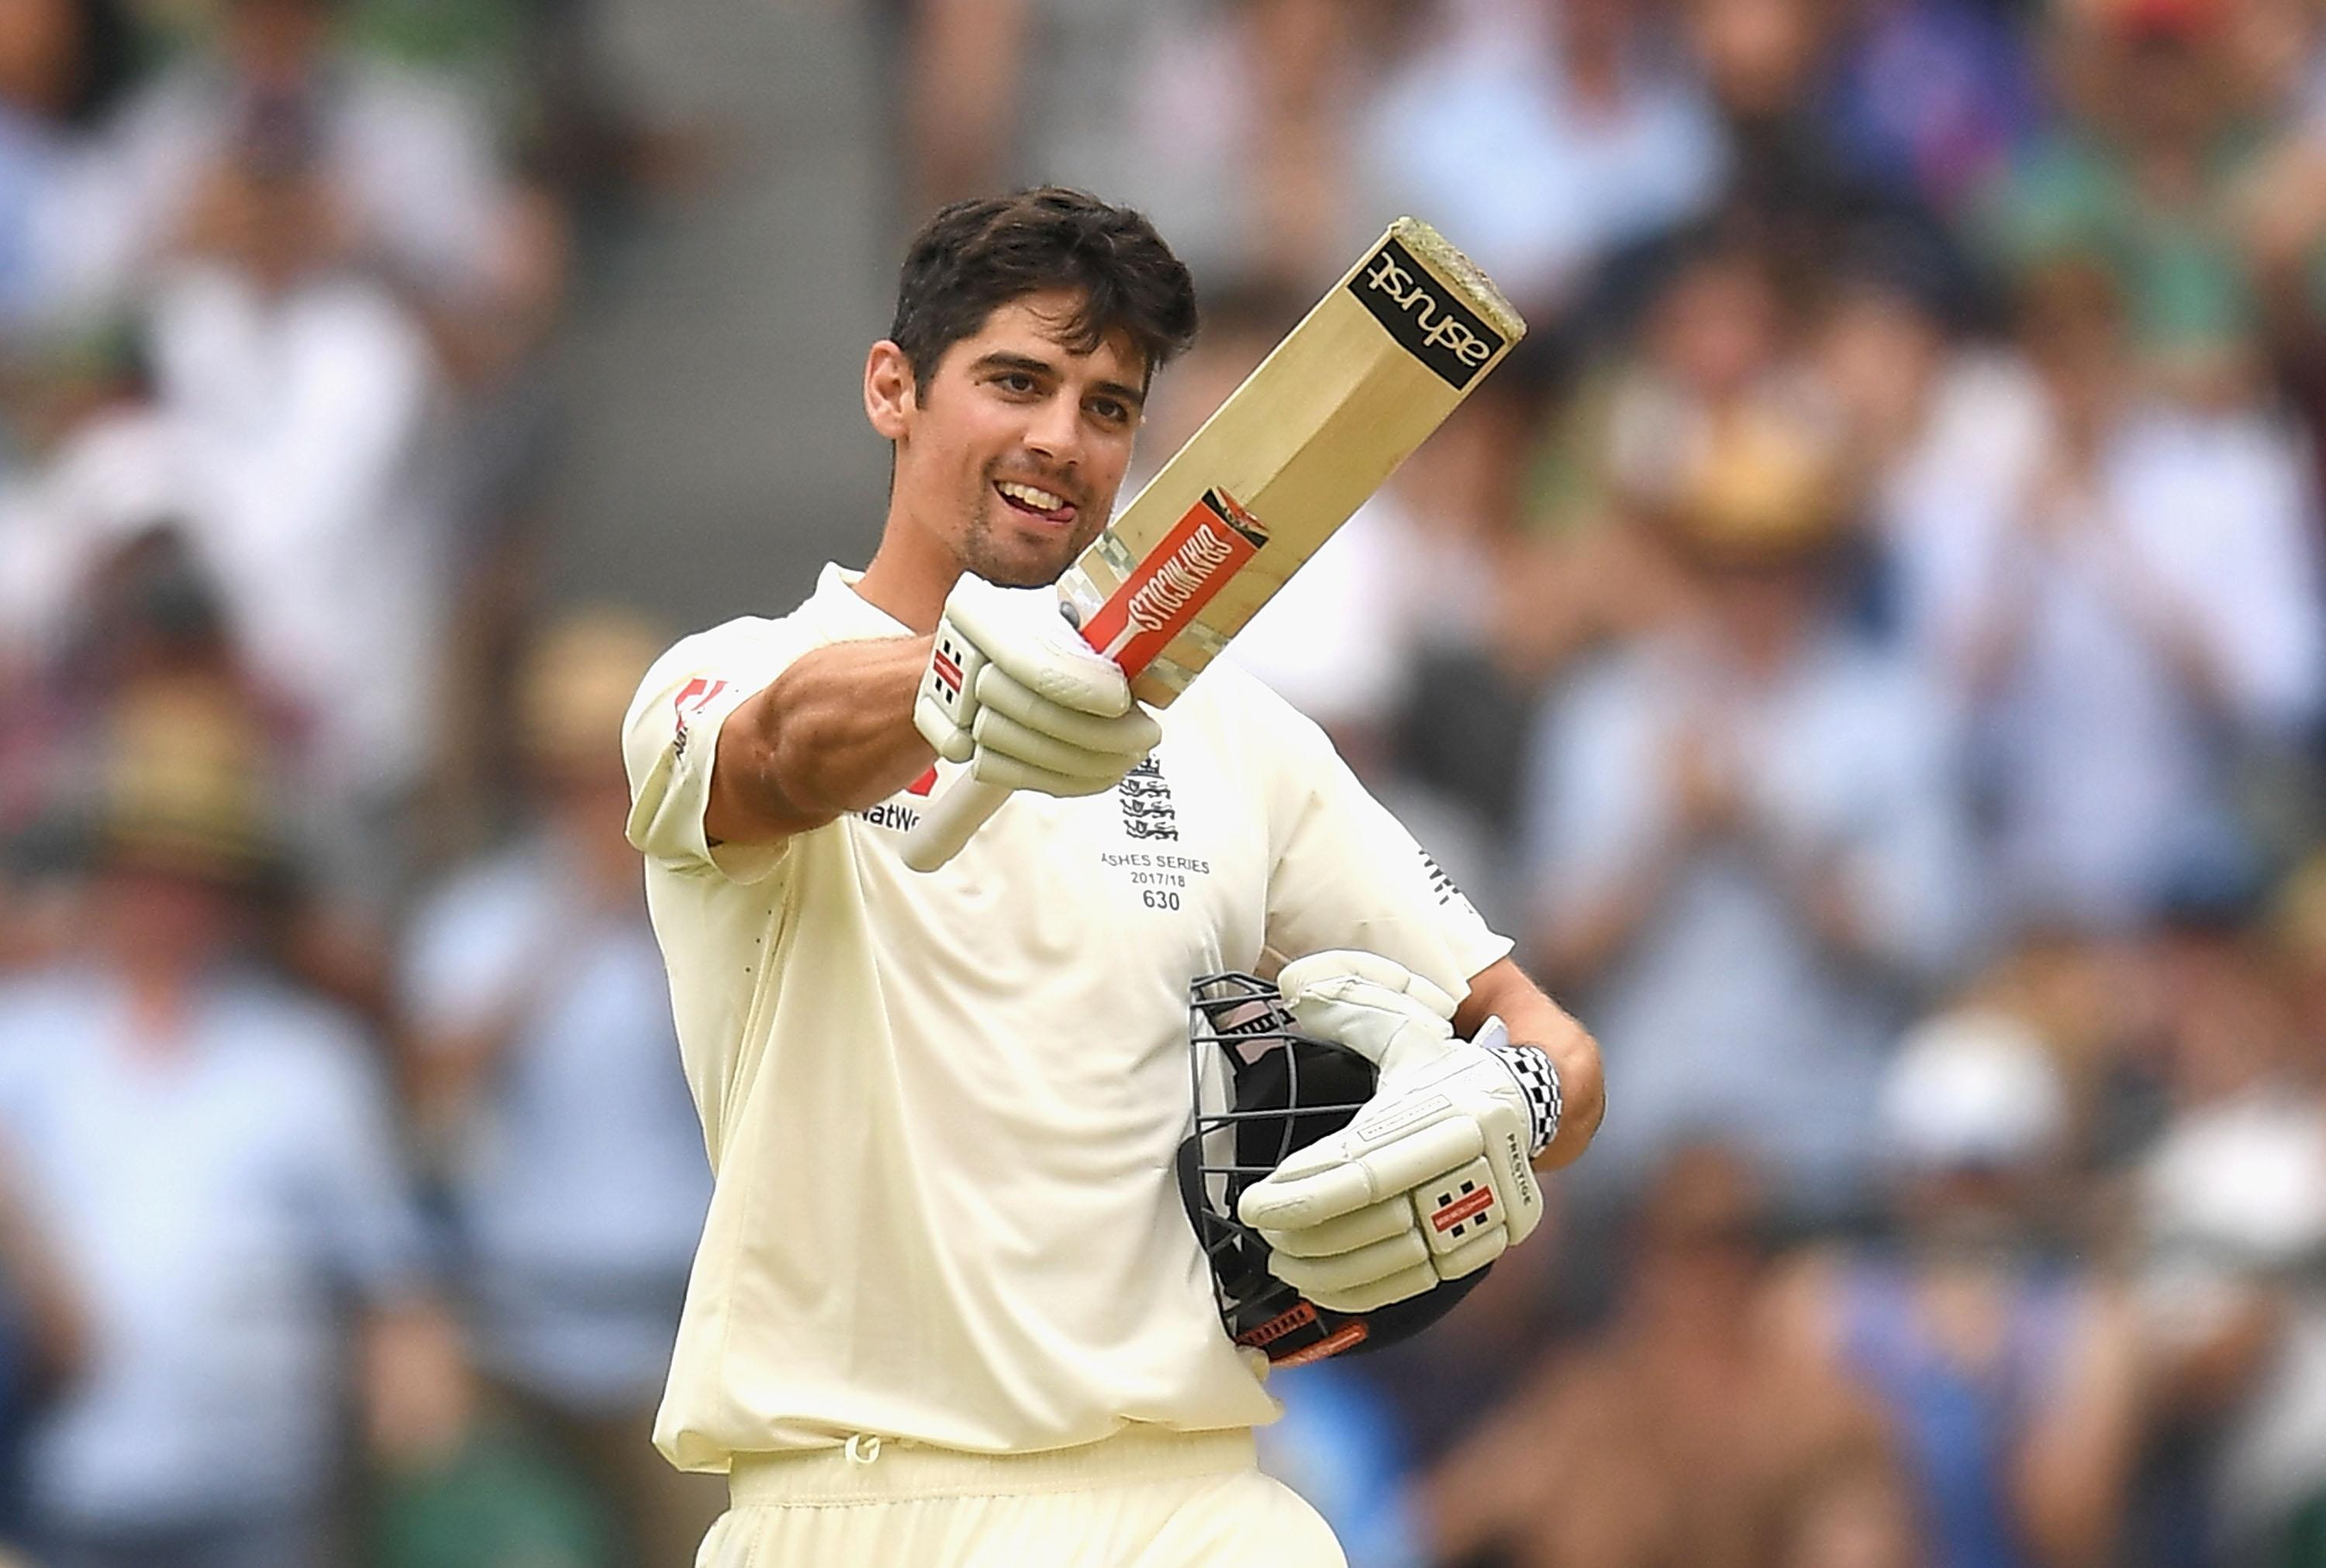 The cricketer retired from England duty after a glittering career - and he is set for some recognition